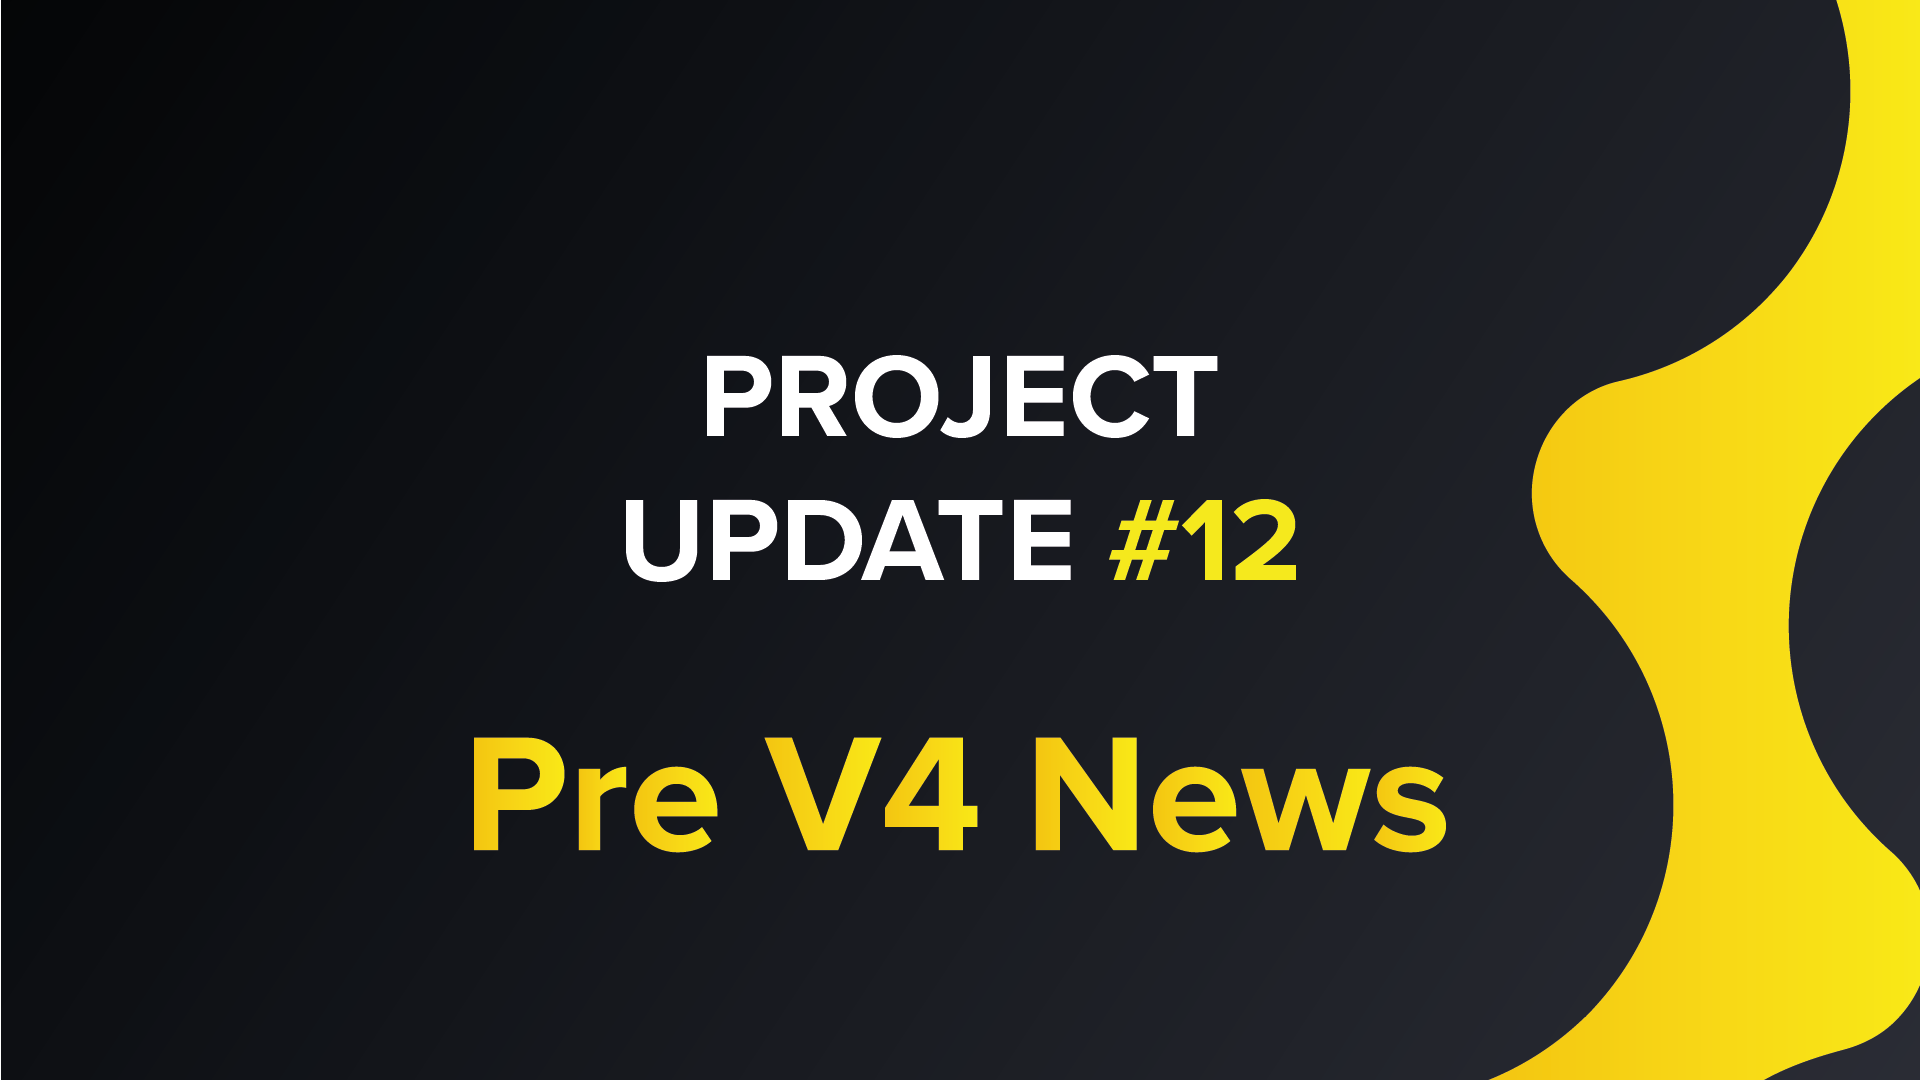 The News Review >> Iexec Project Update 19 Pre V4 News Review 1 Week To Go